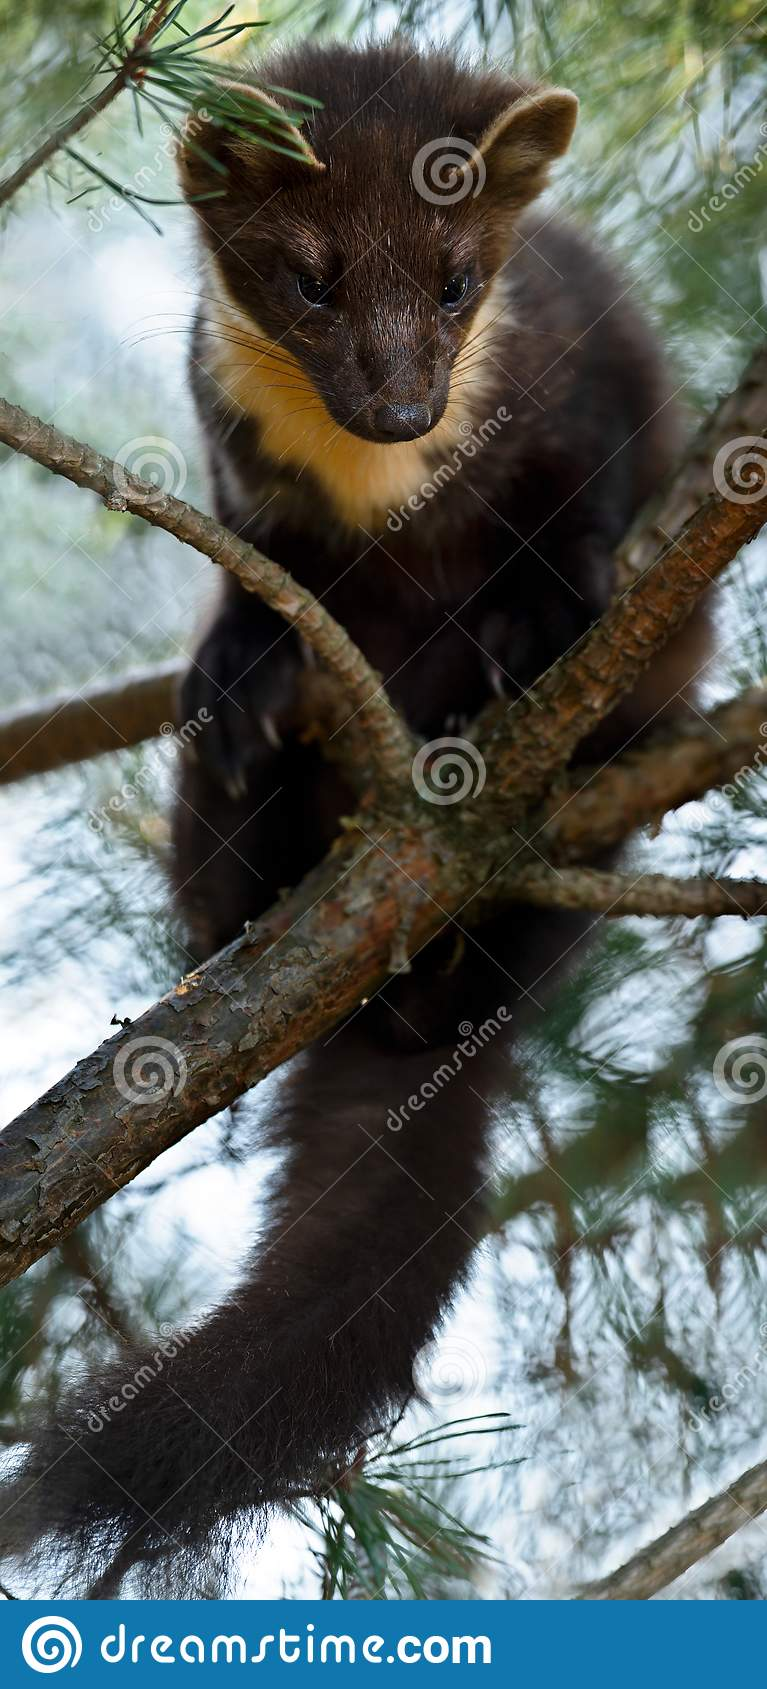 The European pine marten (Martes martes), known most commonly as the pine marten in Anglophone Europe, and less commonly also